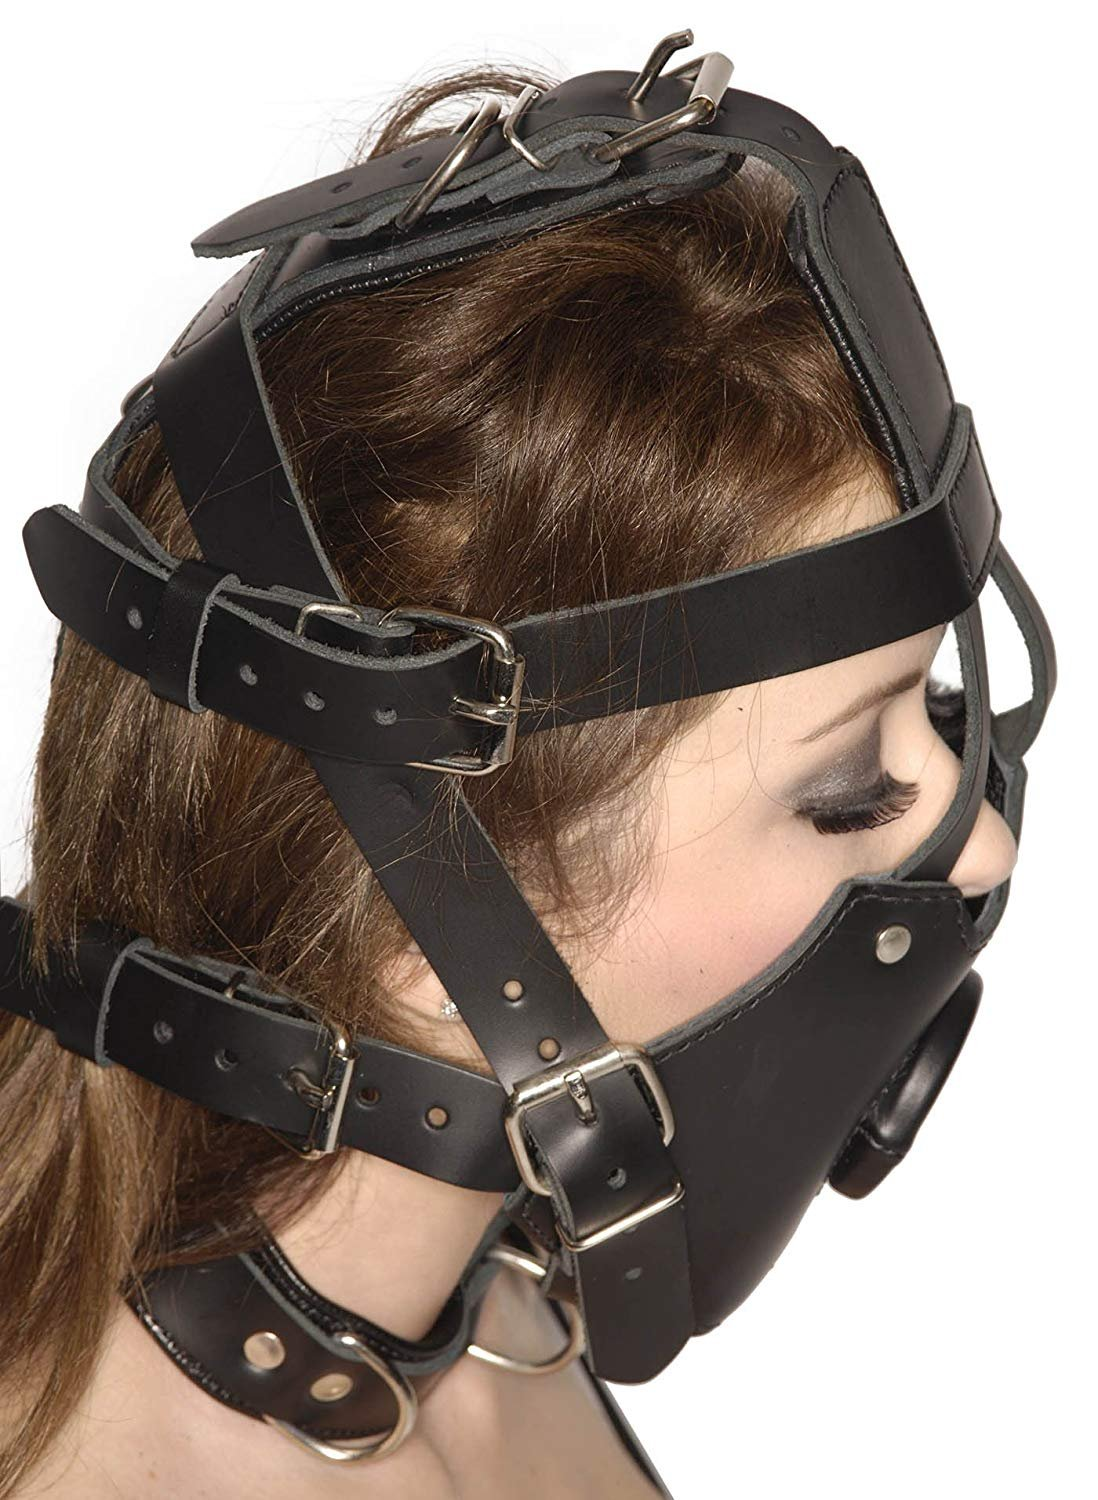 Strict Leather Premium Muzzle with Open Mouth Gag by Strict Leather (Image #3)